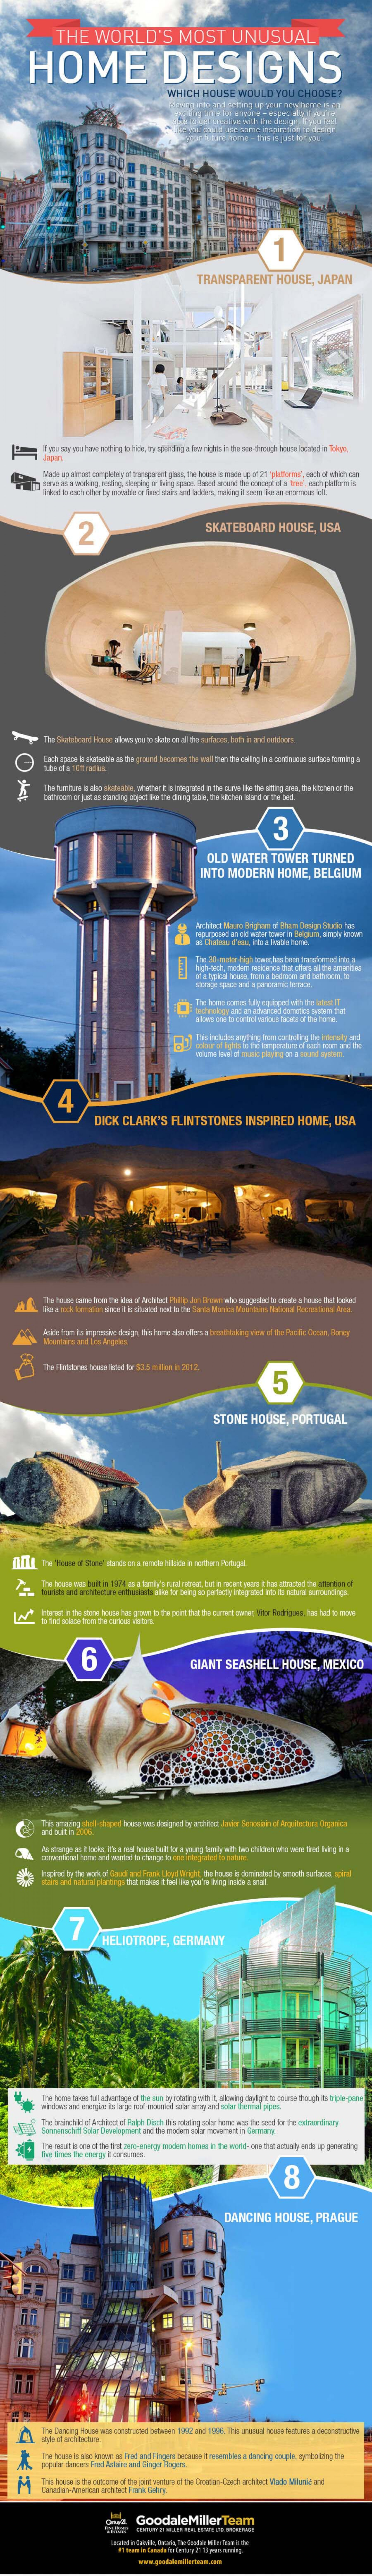 8 of the World's Most Unusual Homes Infographic